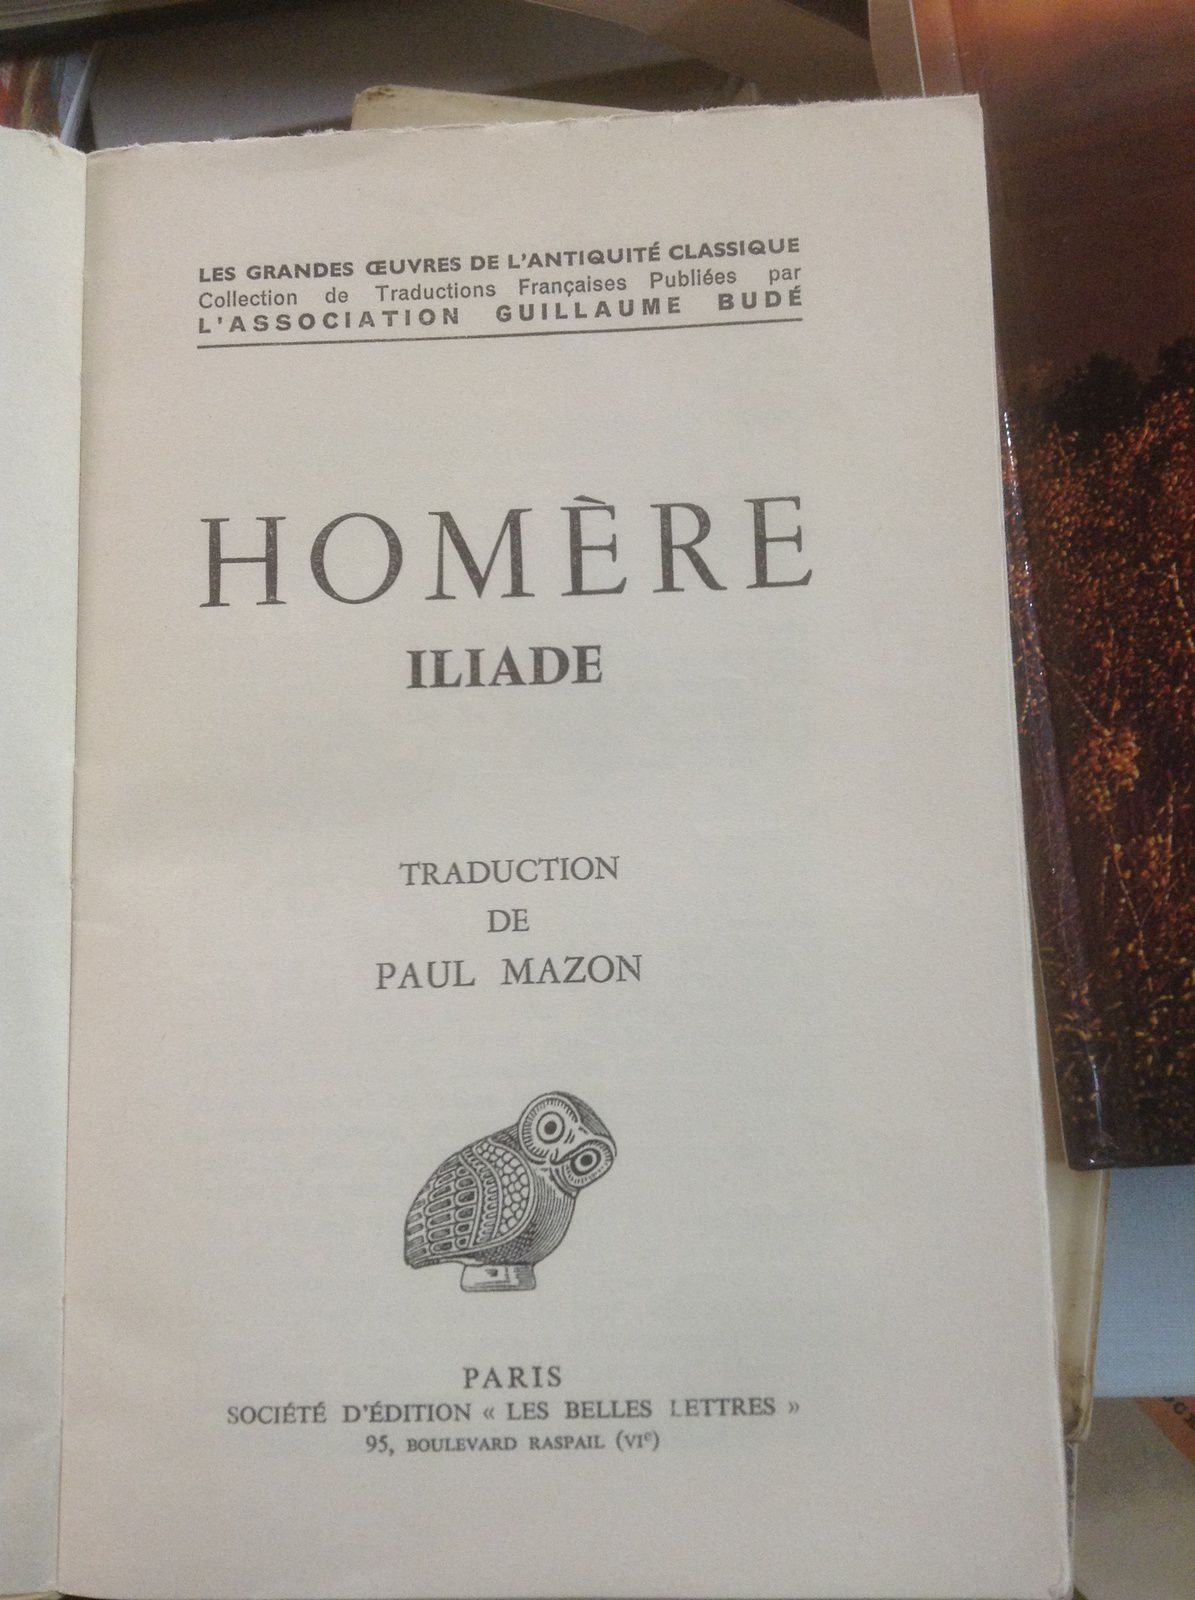 Homere iliade tradution de paul mazon edtion les belle for Dessin miroir bris